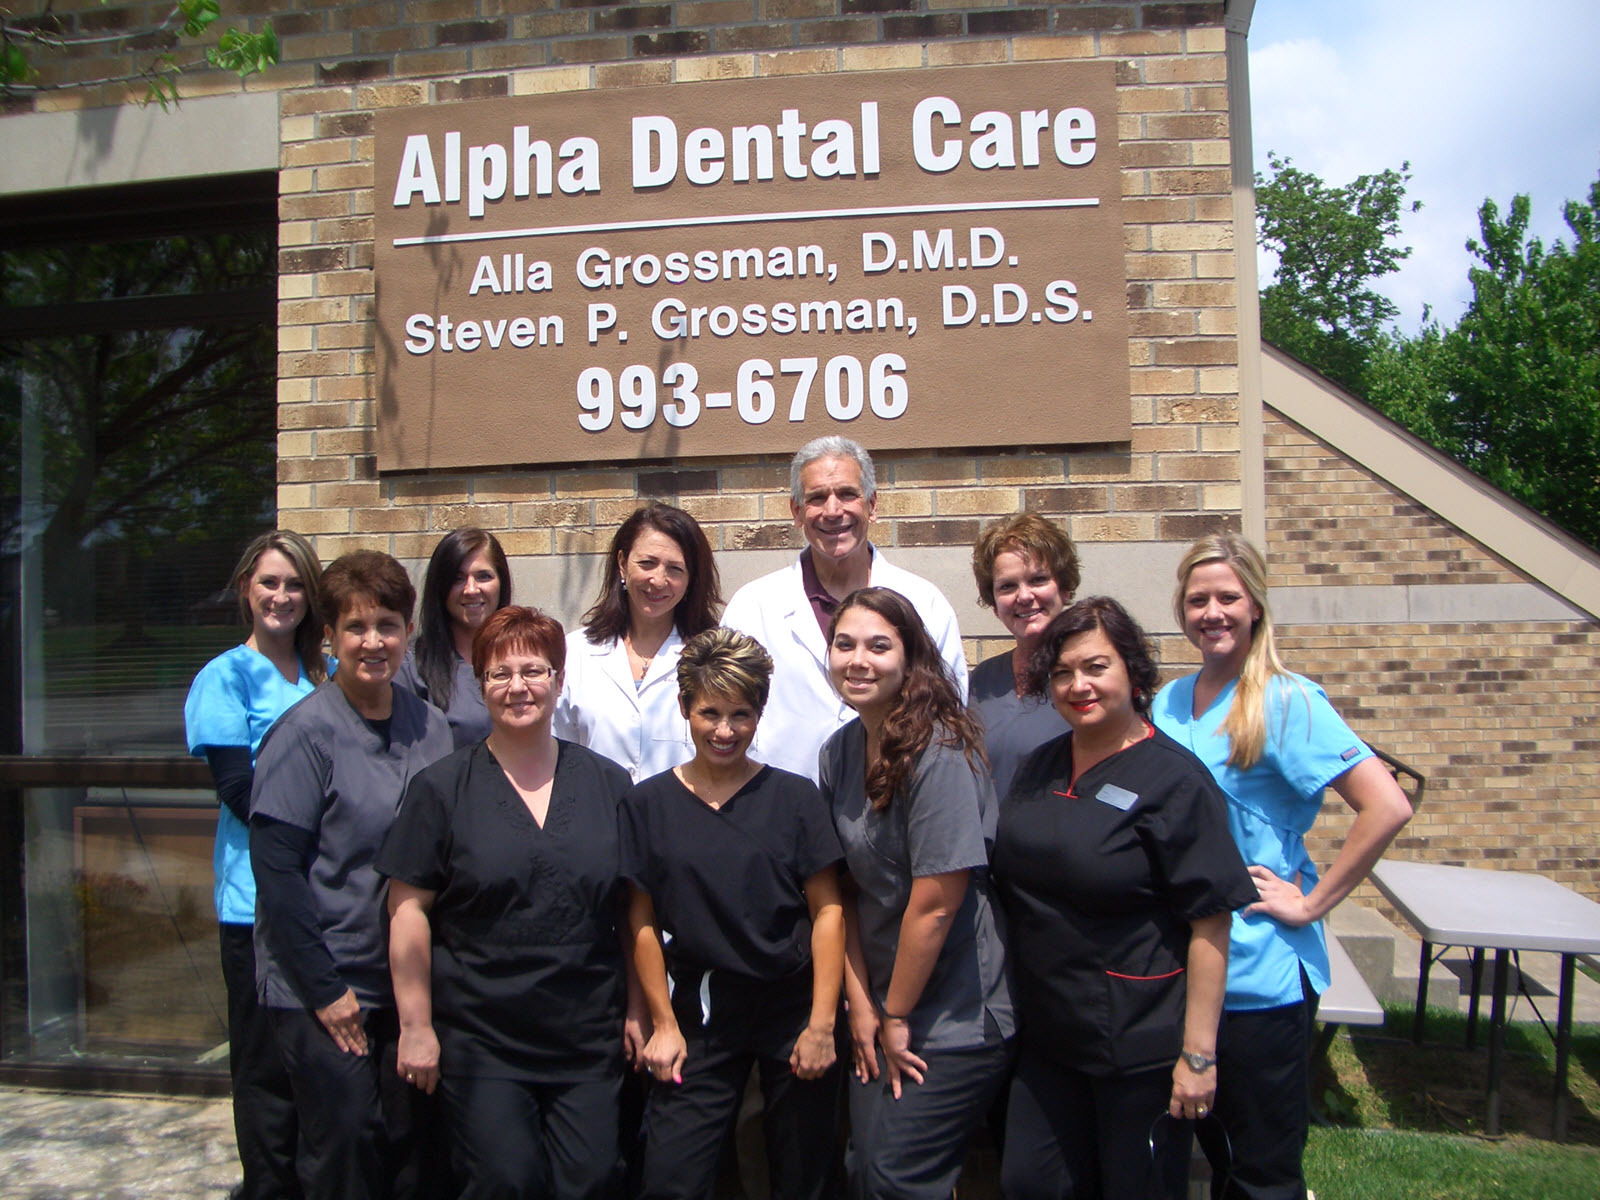 Best Dentists St Louis, Alpha Dental Care